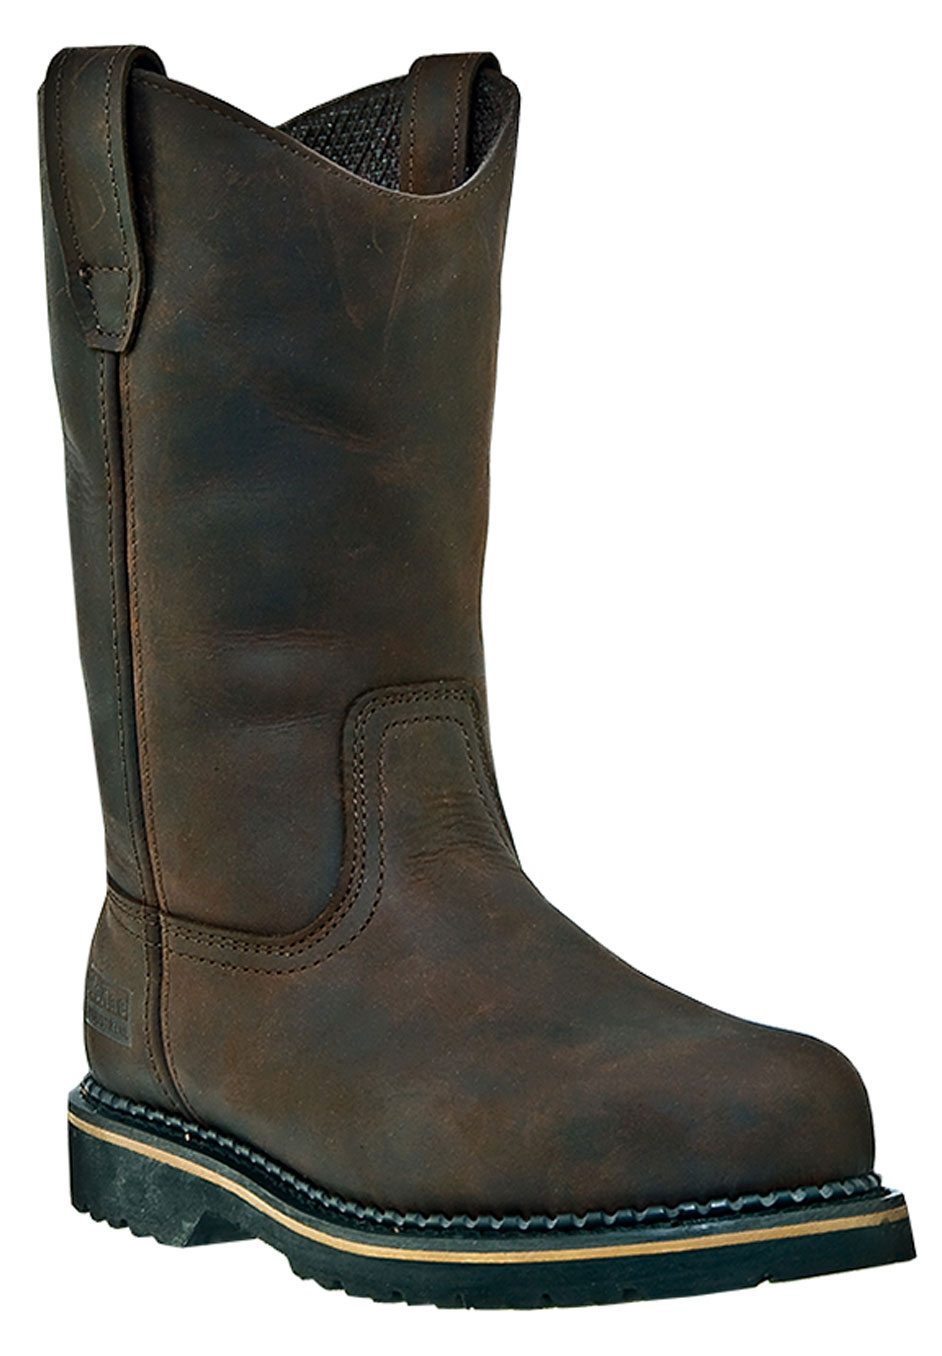 McRae 11' Soft Toe Wellington Boots,